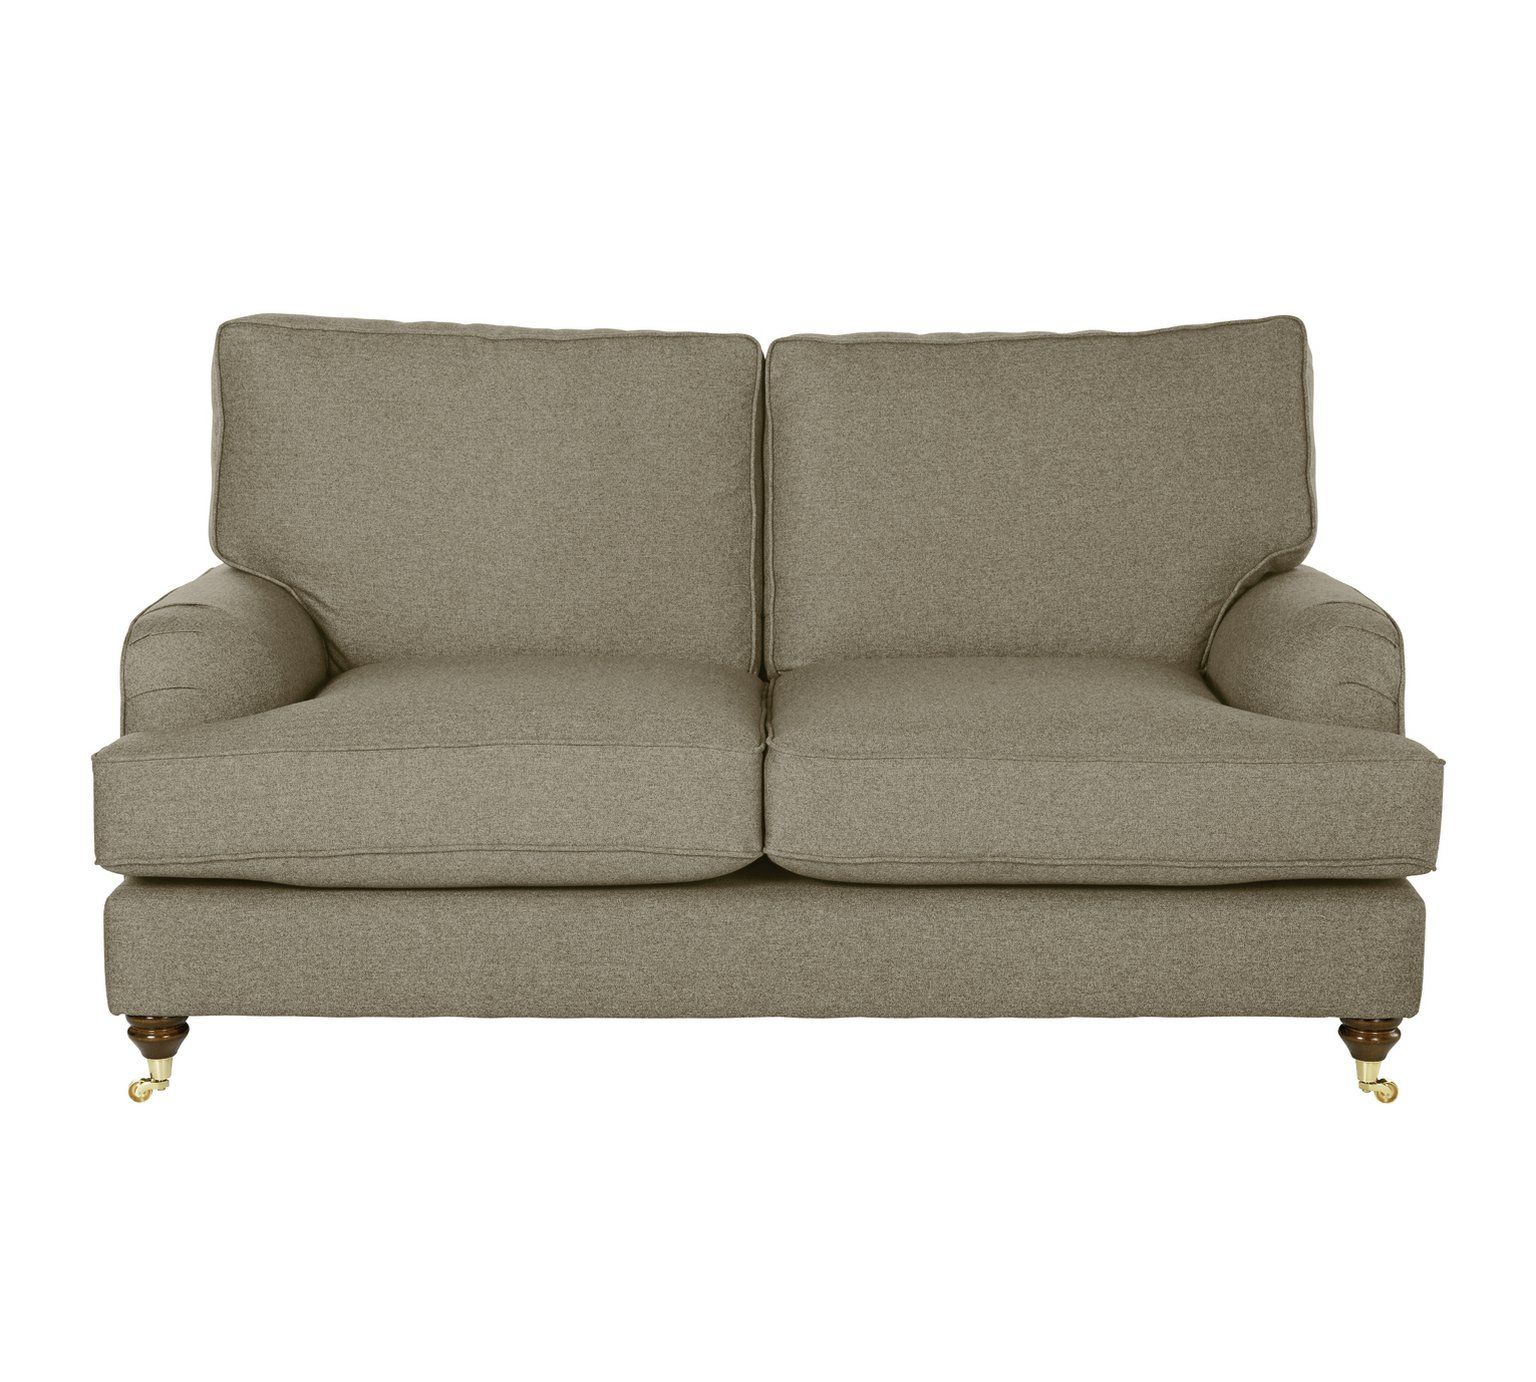 Swell Buy Heart Of House Abberton 2 Seater Sofa Natural Tweed At Bralicious Painted Fabric Chair Ideas Braliciousco